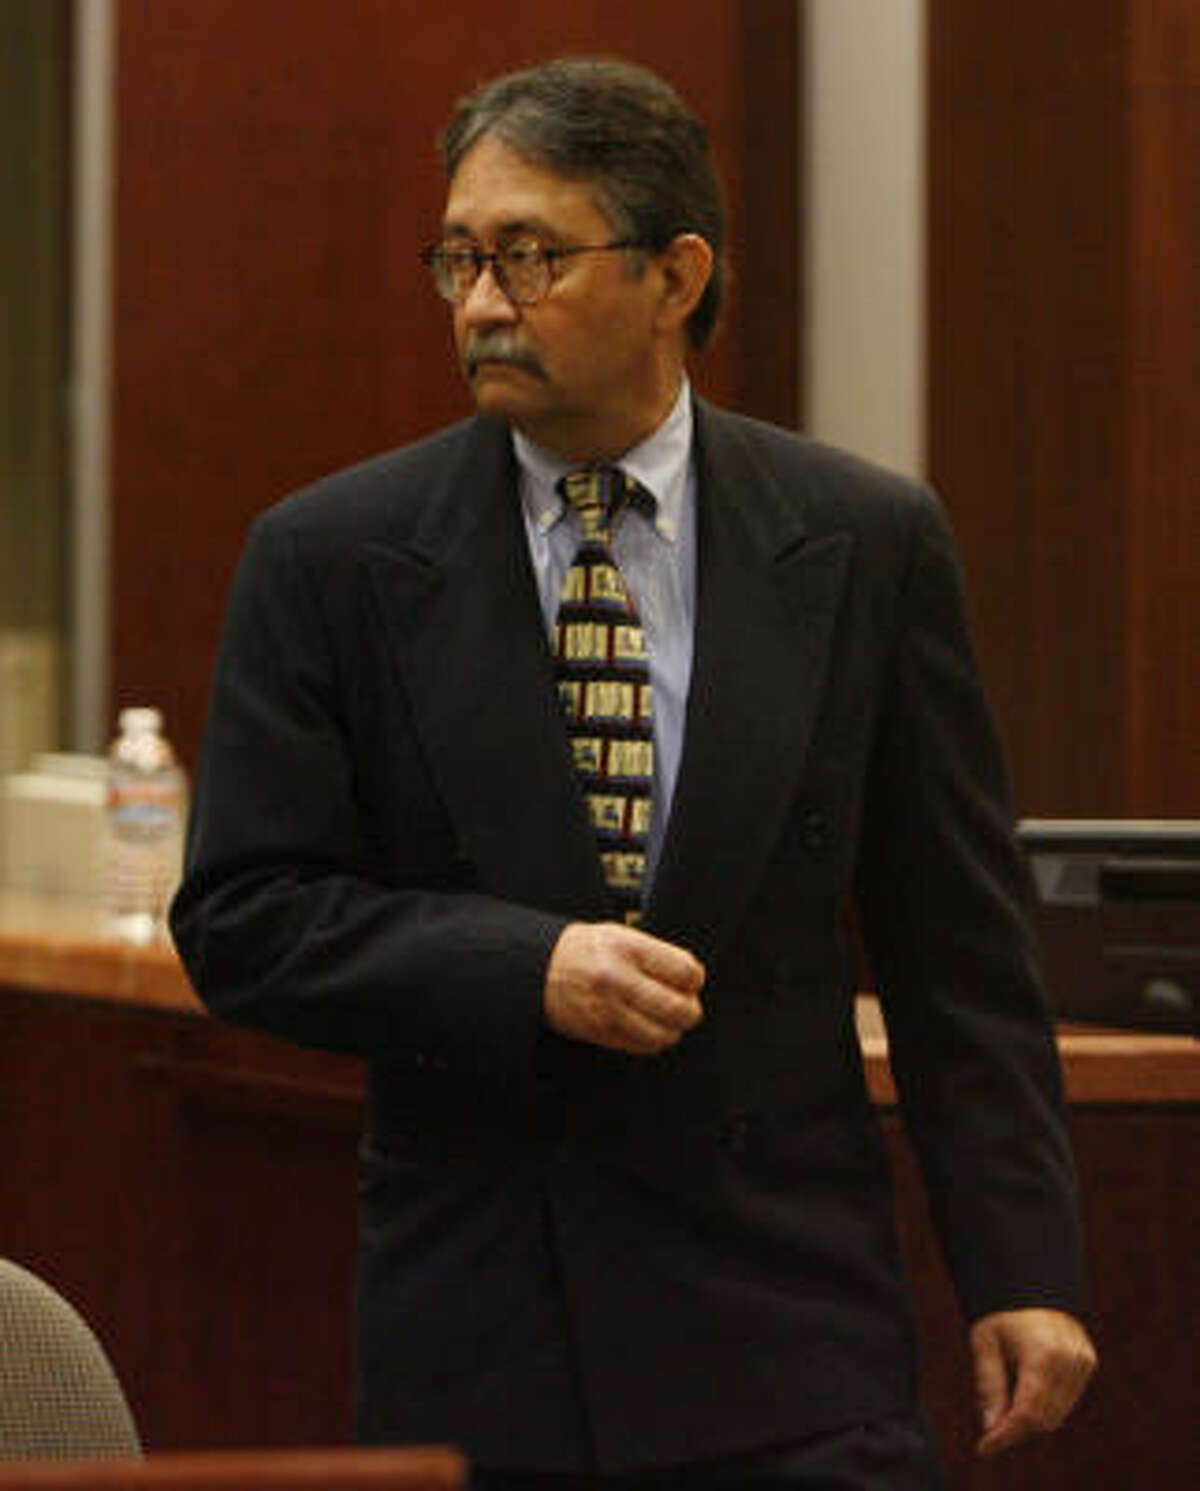 If convicted, Harris County Criminal Court-at-Law Judge Don Jackson could face up to a year in jail and a $4,000 fine.